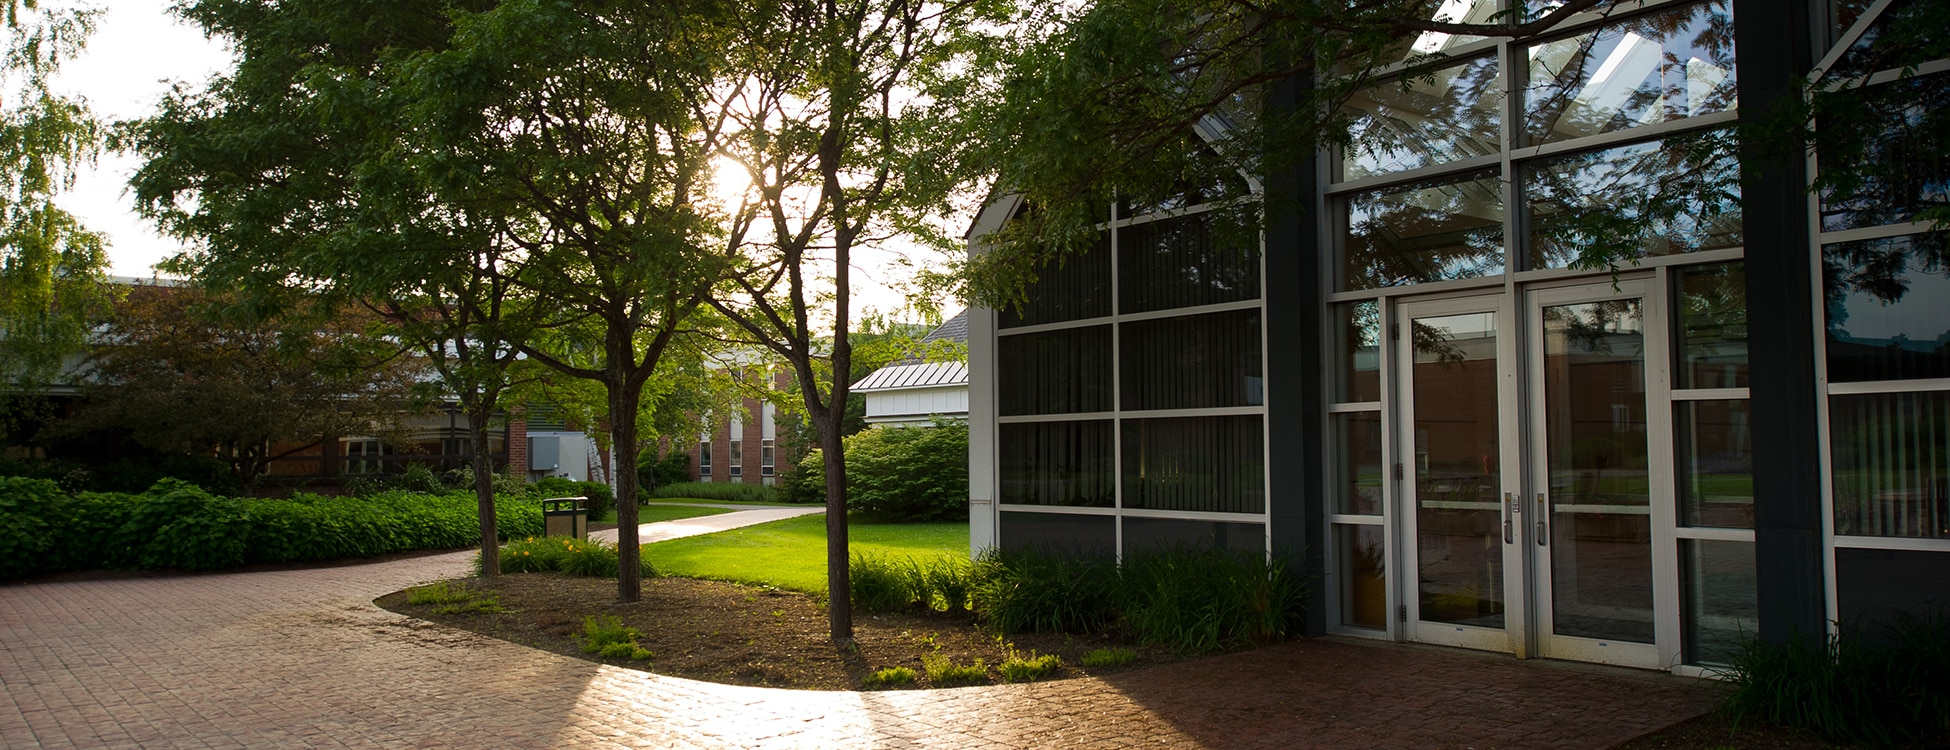 Administration building, Randolph Center campus, plaza, patio, sunset